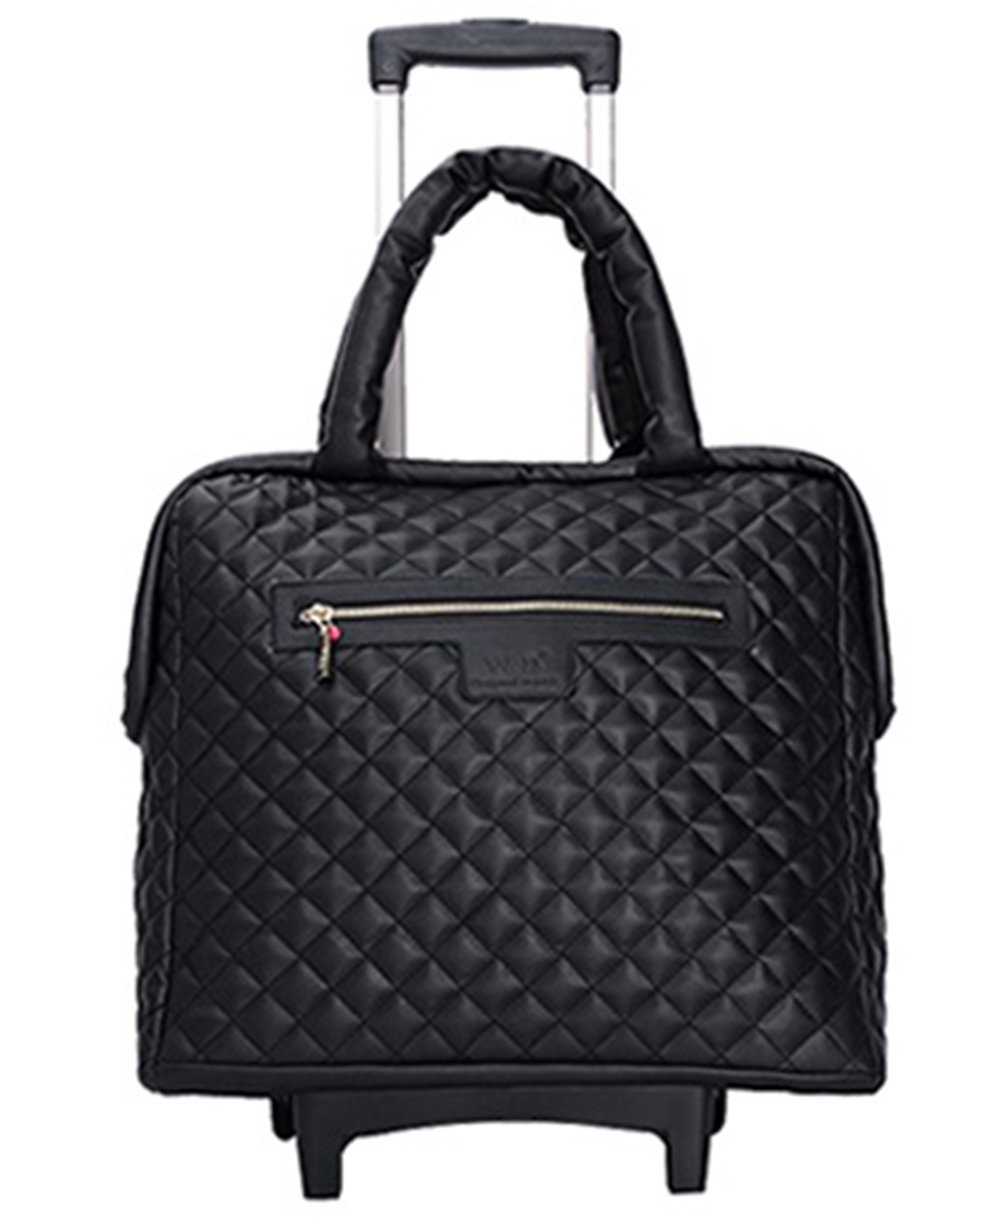 18 inch Fashion Wheeled Rolling Tote Garment Bag suitcase Luggage Spinner Mobile Office for women girls 3 colors (Black)